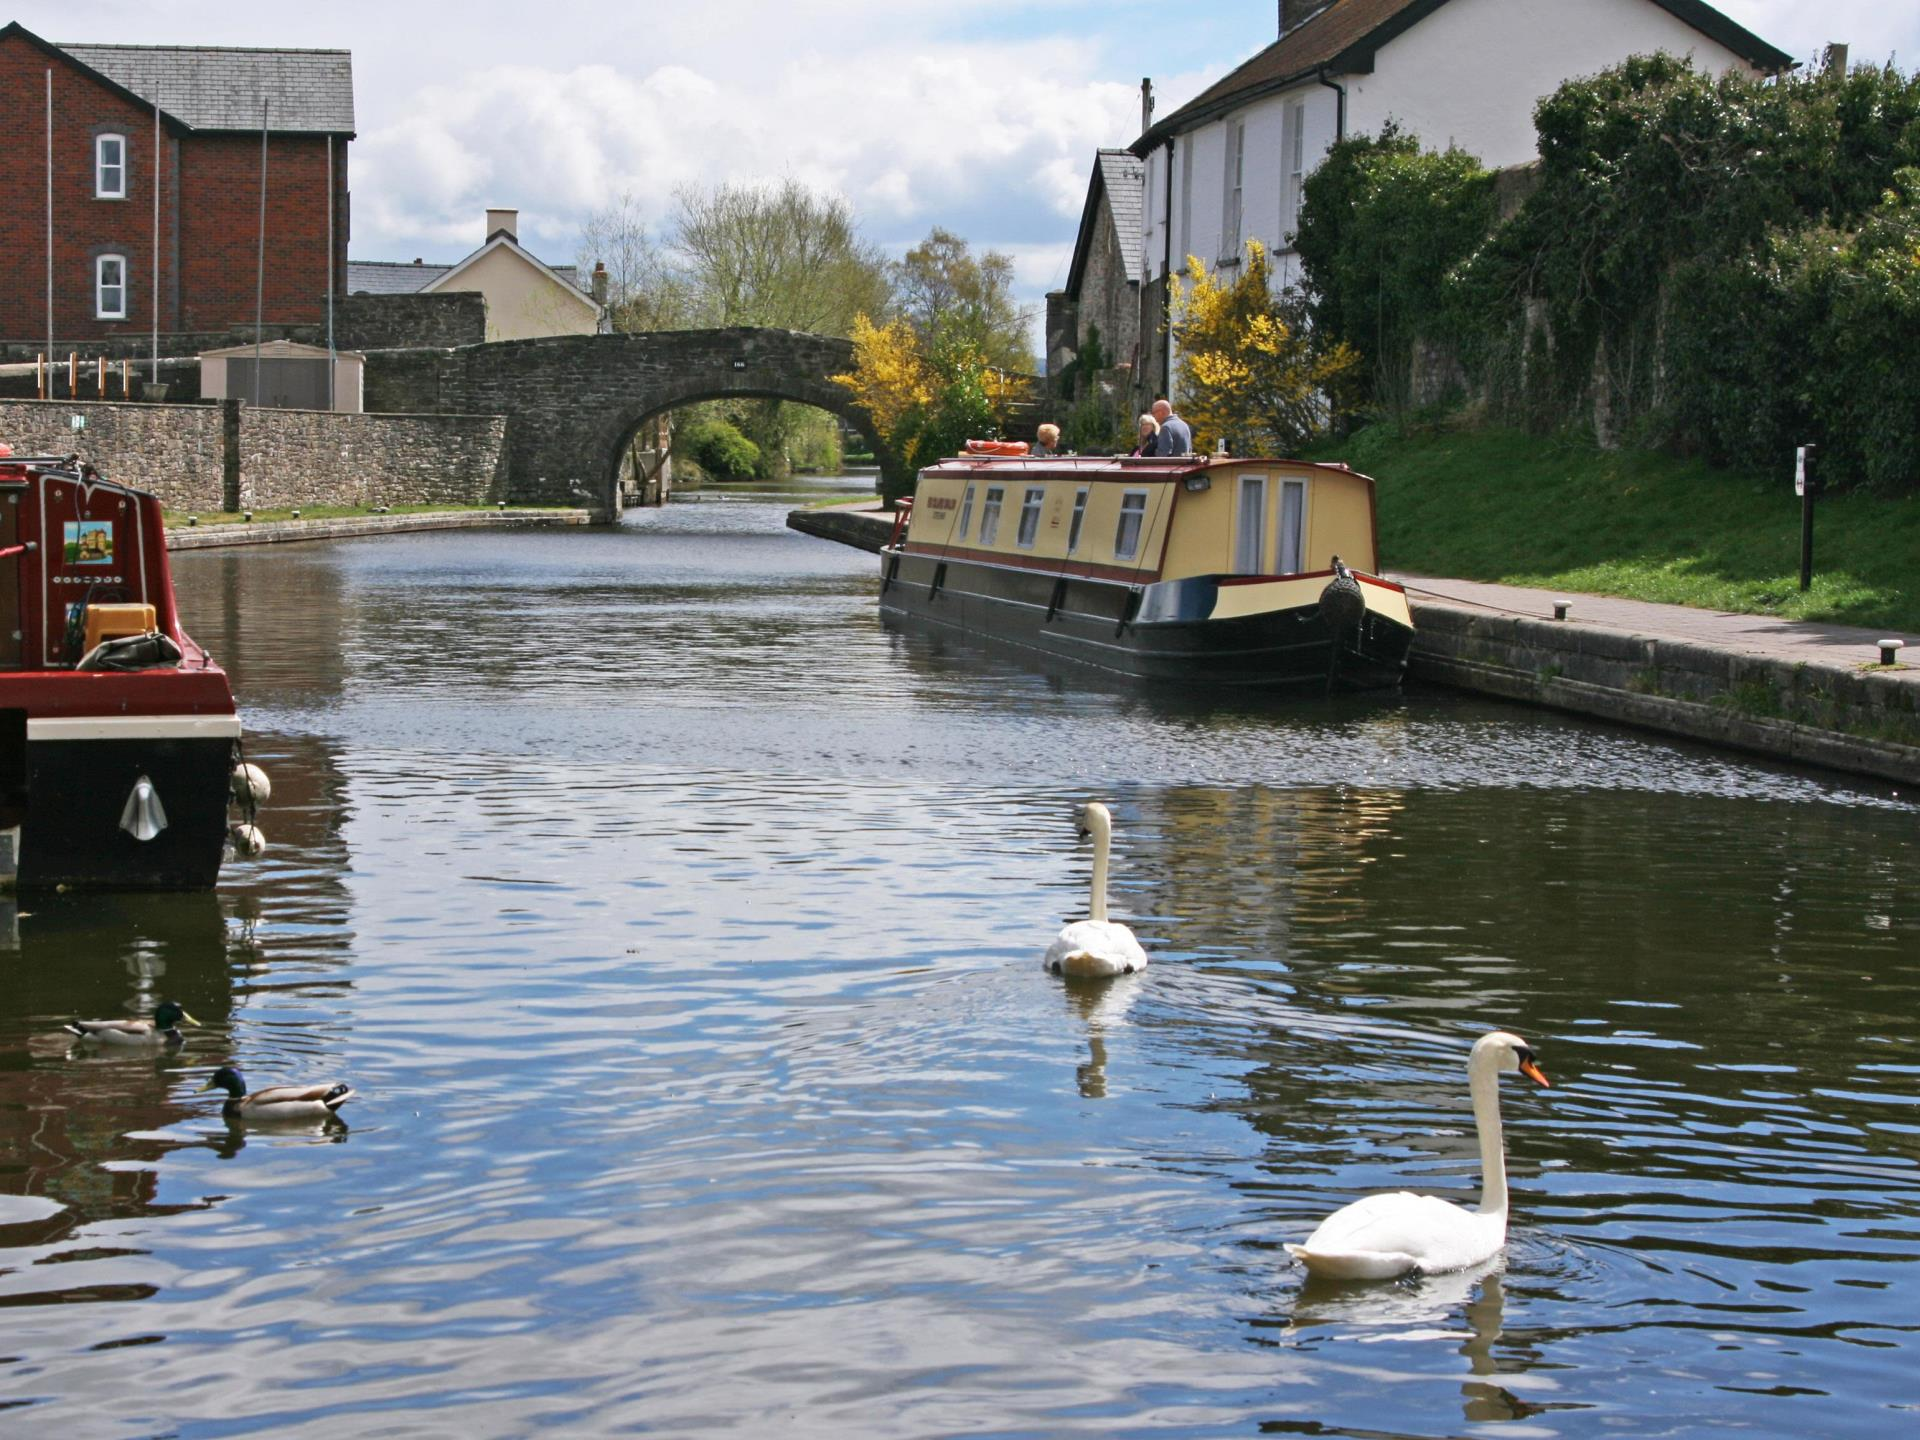 The Monmouthshire and Brecon Canal nearby